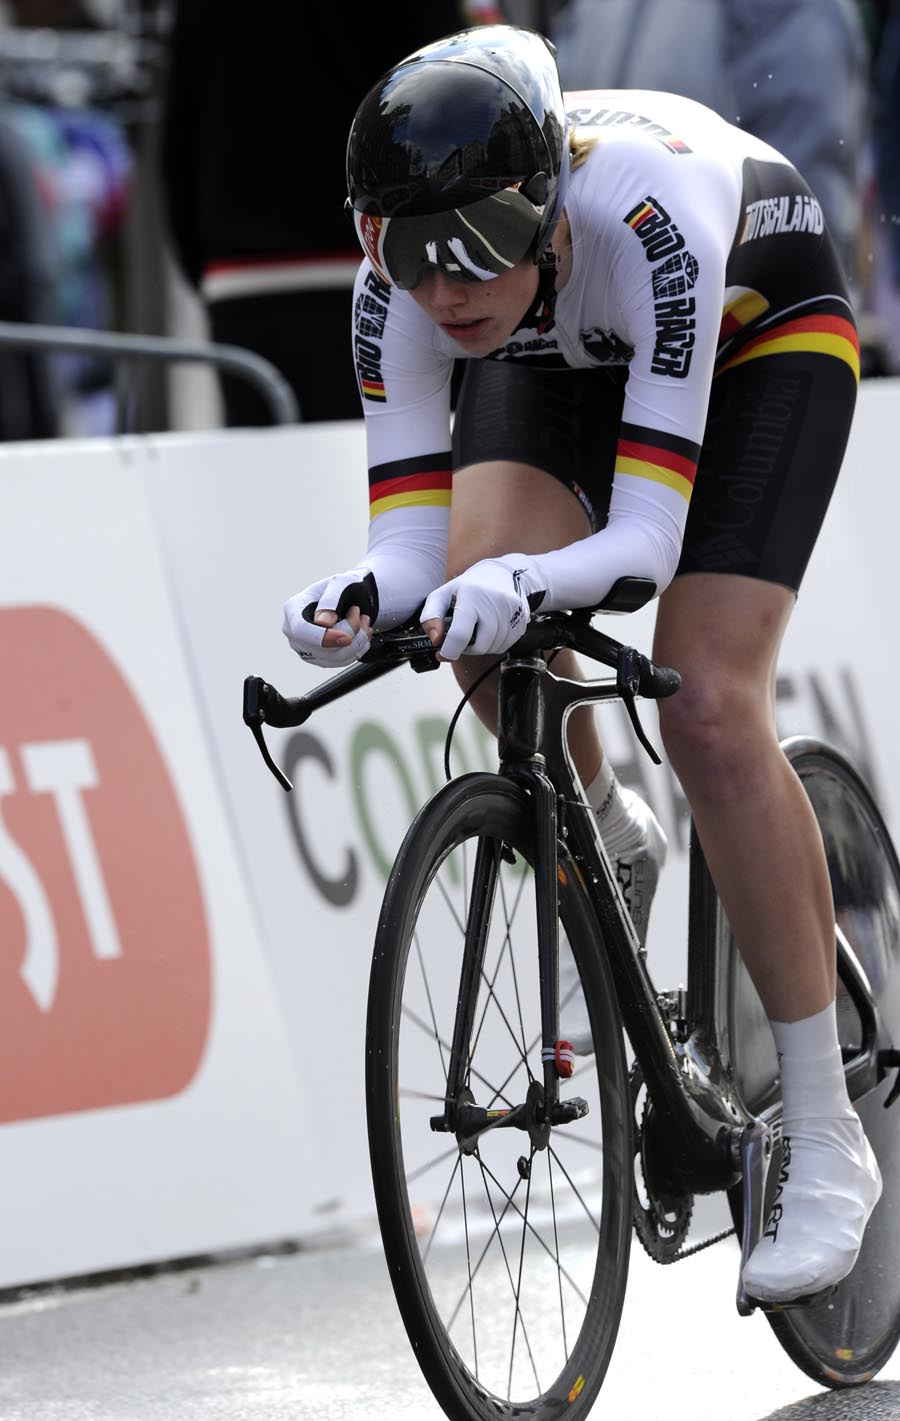 Mieke Kroger, Junior women